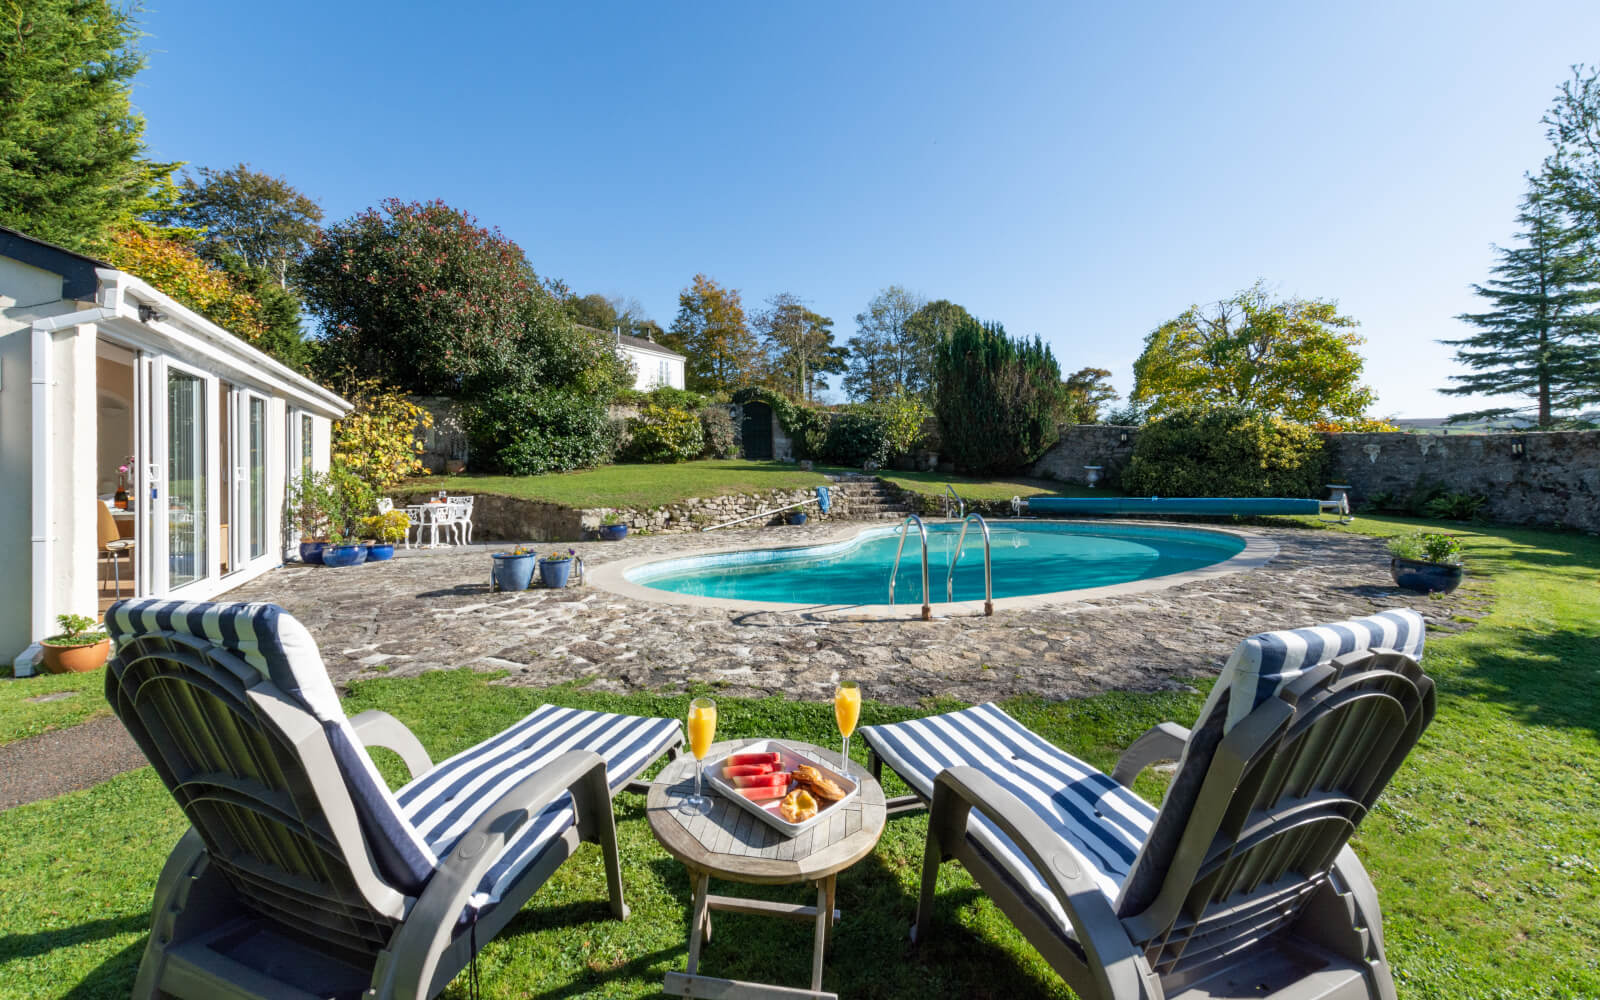 Holiday Cottages With Swimming Pools In Tameside To Rent - Save up to 60%